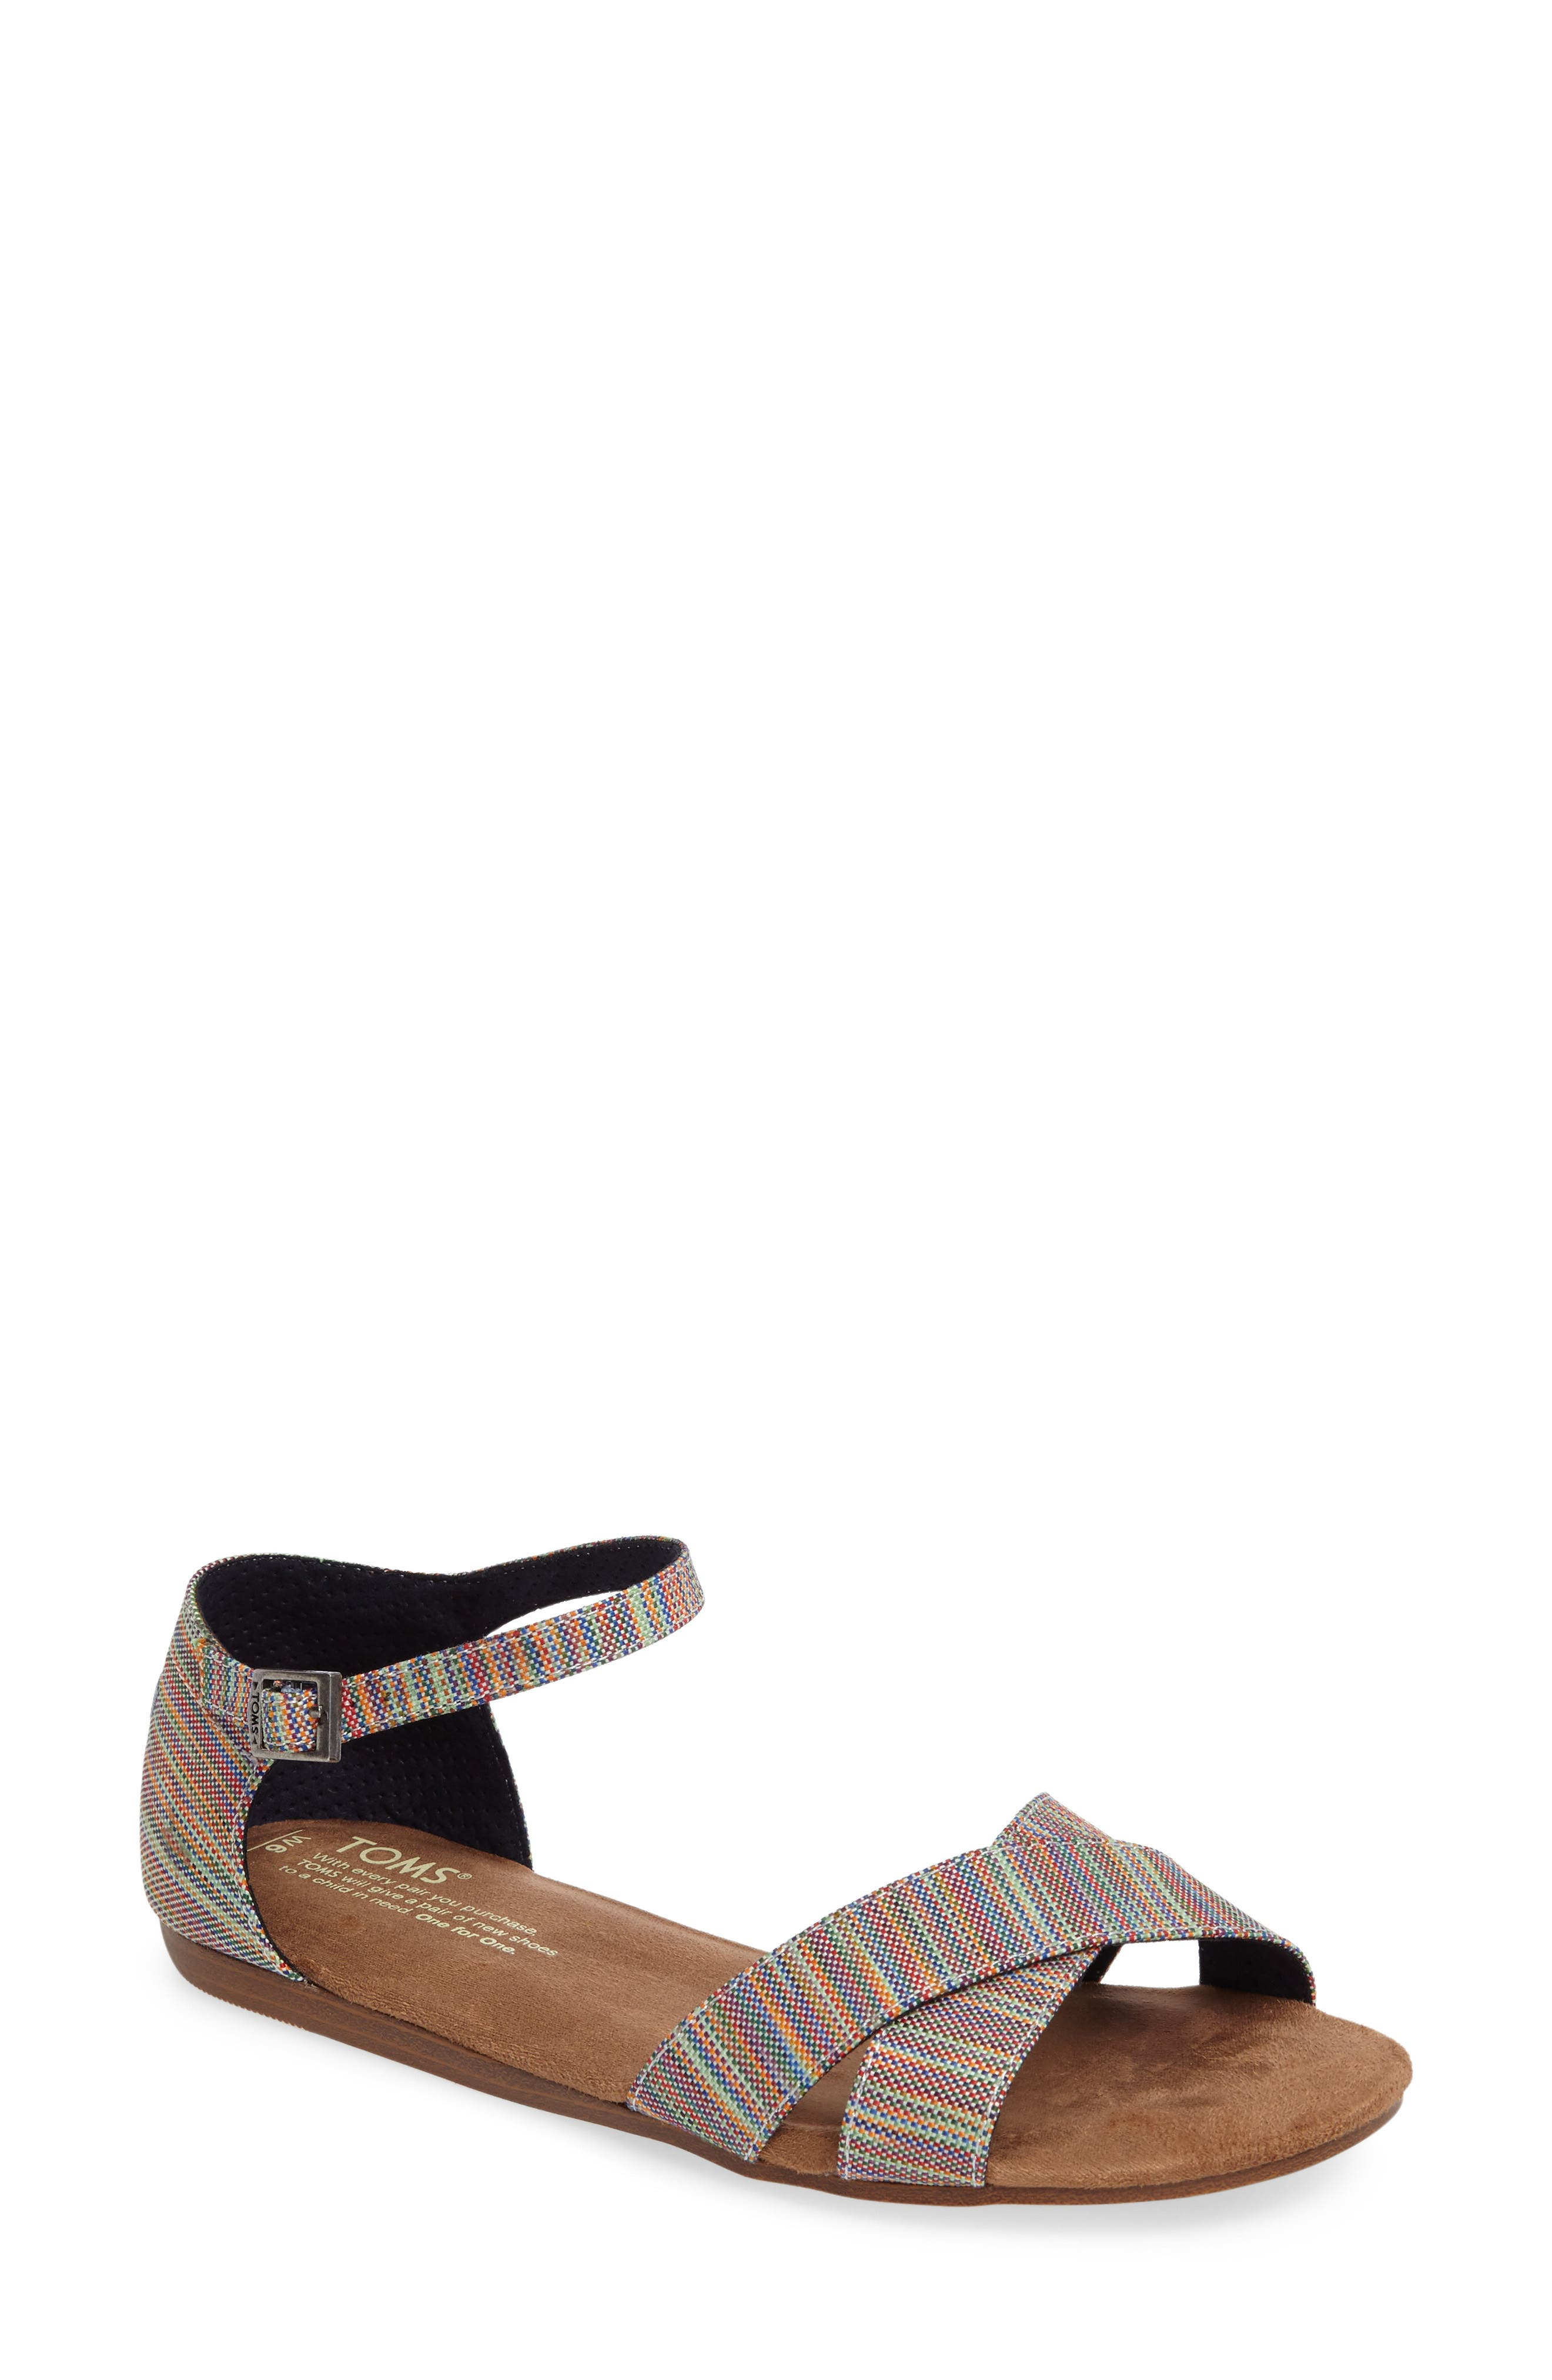 Correa Sandal,                         Main,                         color, Blue Multi